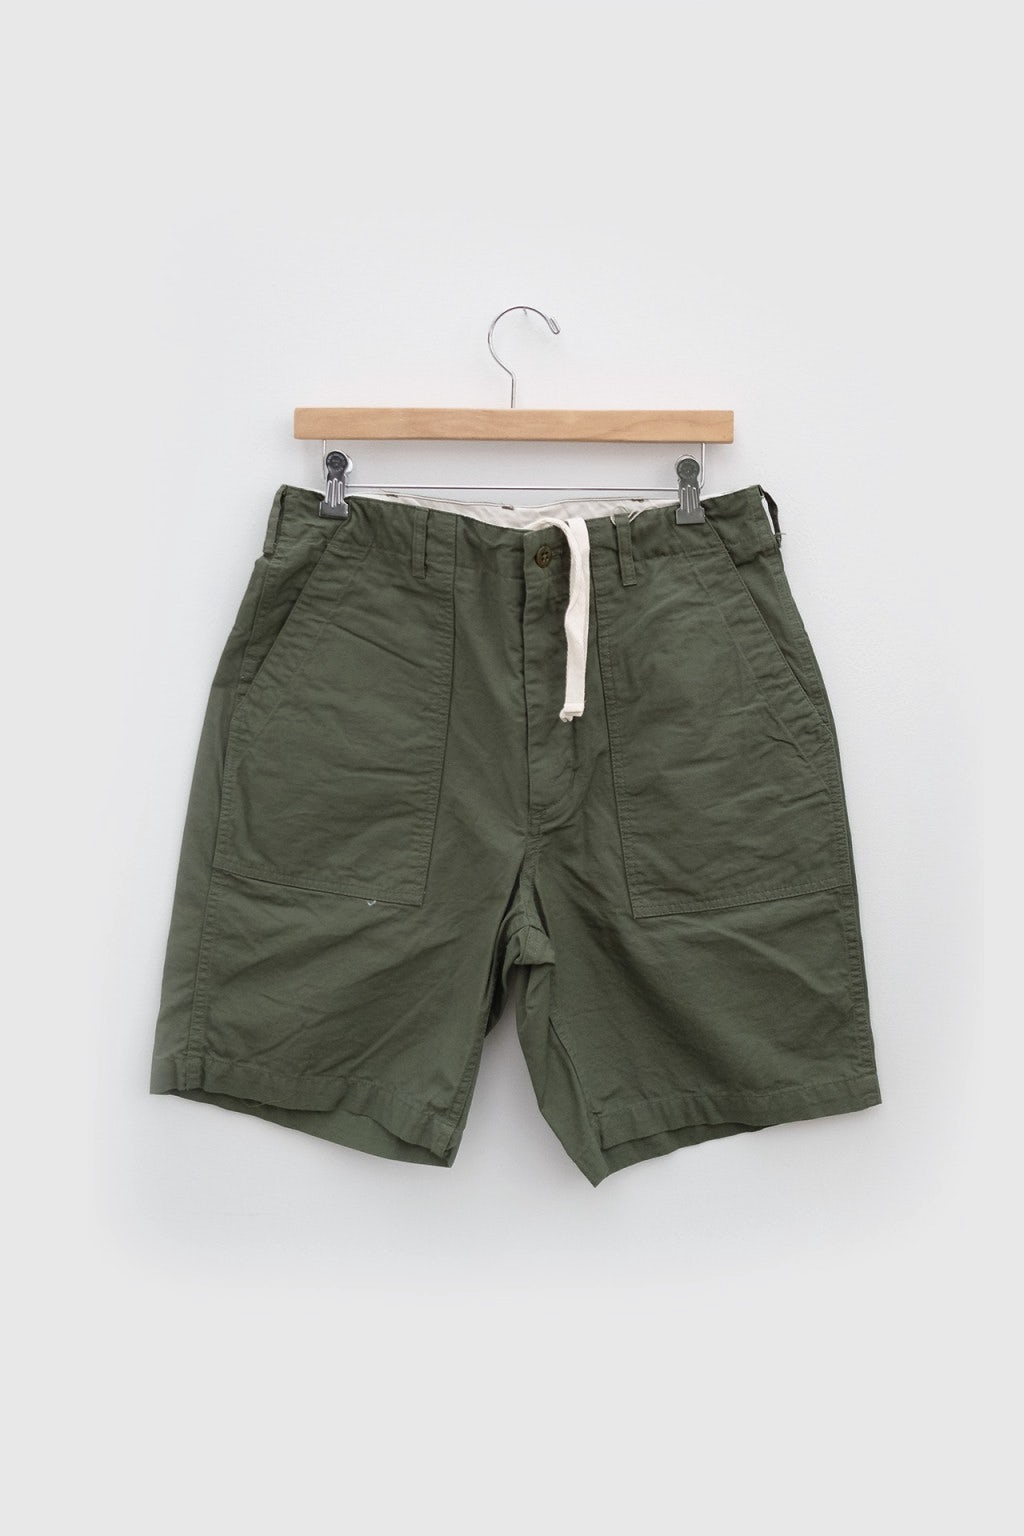 Engineered Garments Fatigue Short Olive Cotton Ripstop